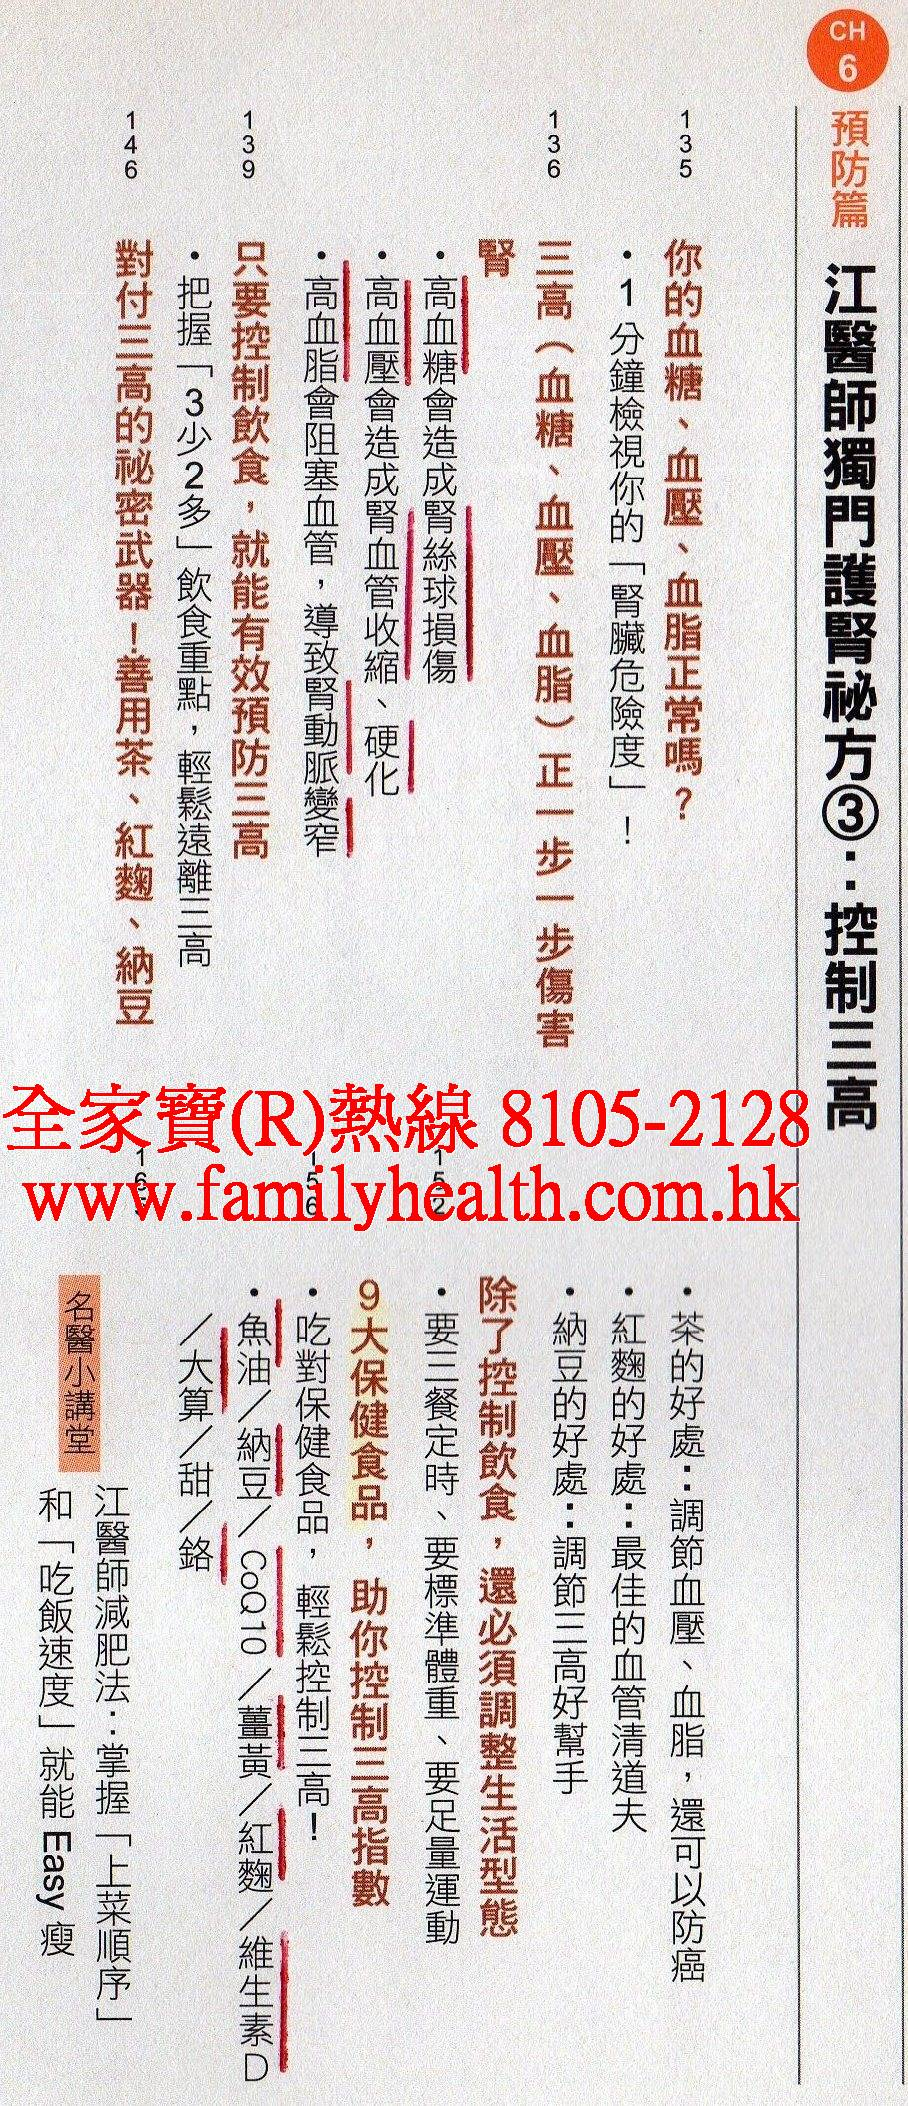 http://www.familyhealth.com.hk/files/full/1024_3.jpg